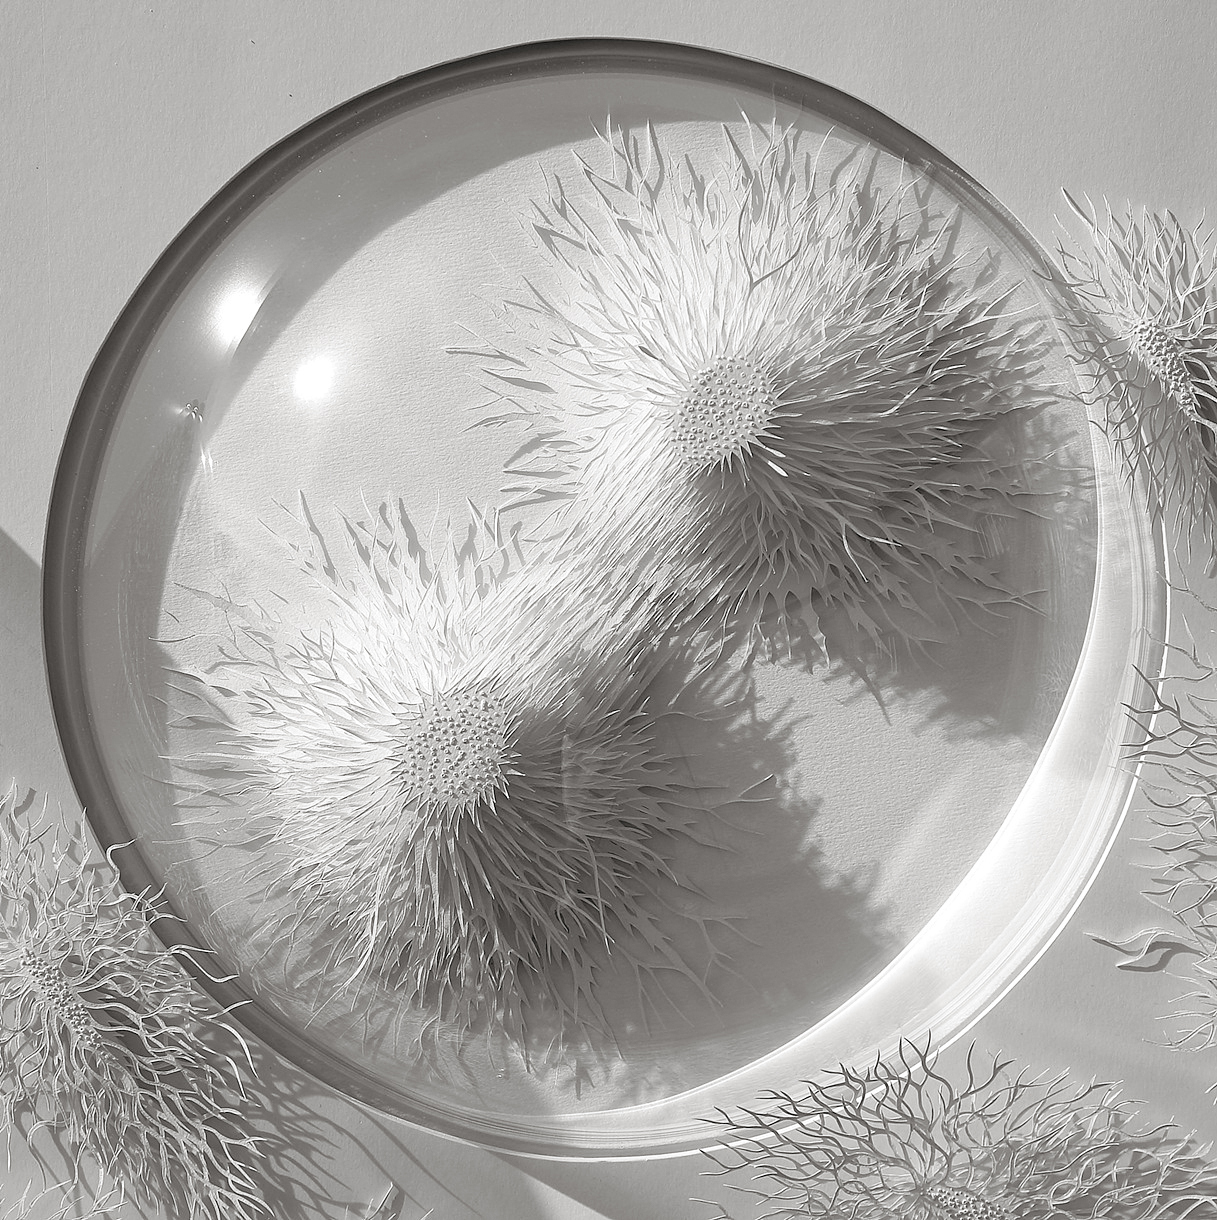 Is This A Snowy Wonderland Or The World Inside A Petri Dish?